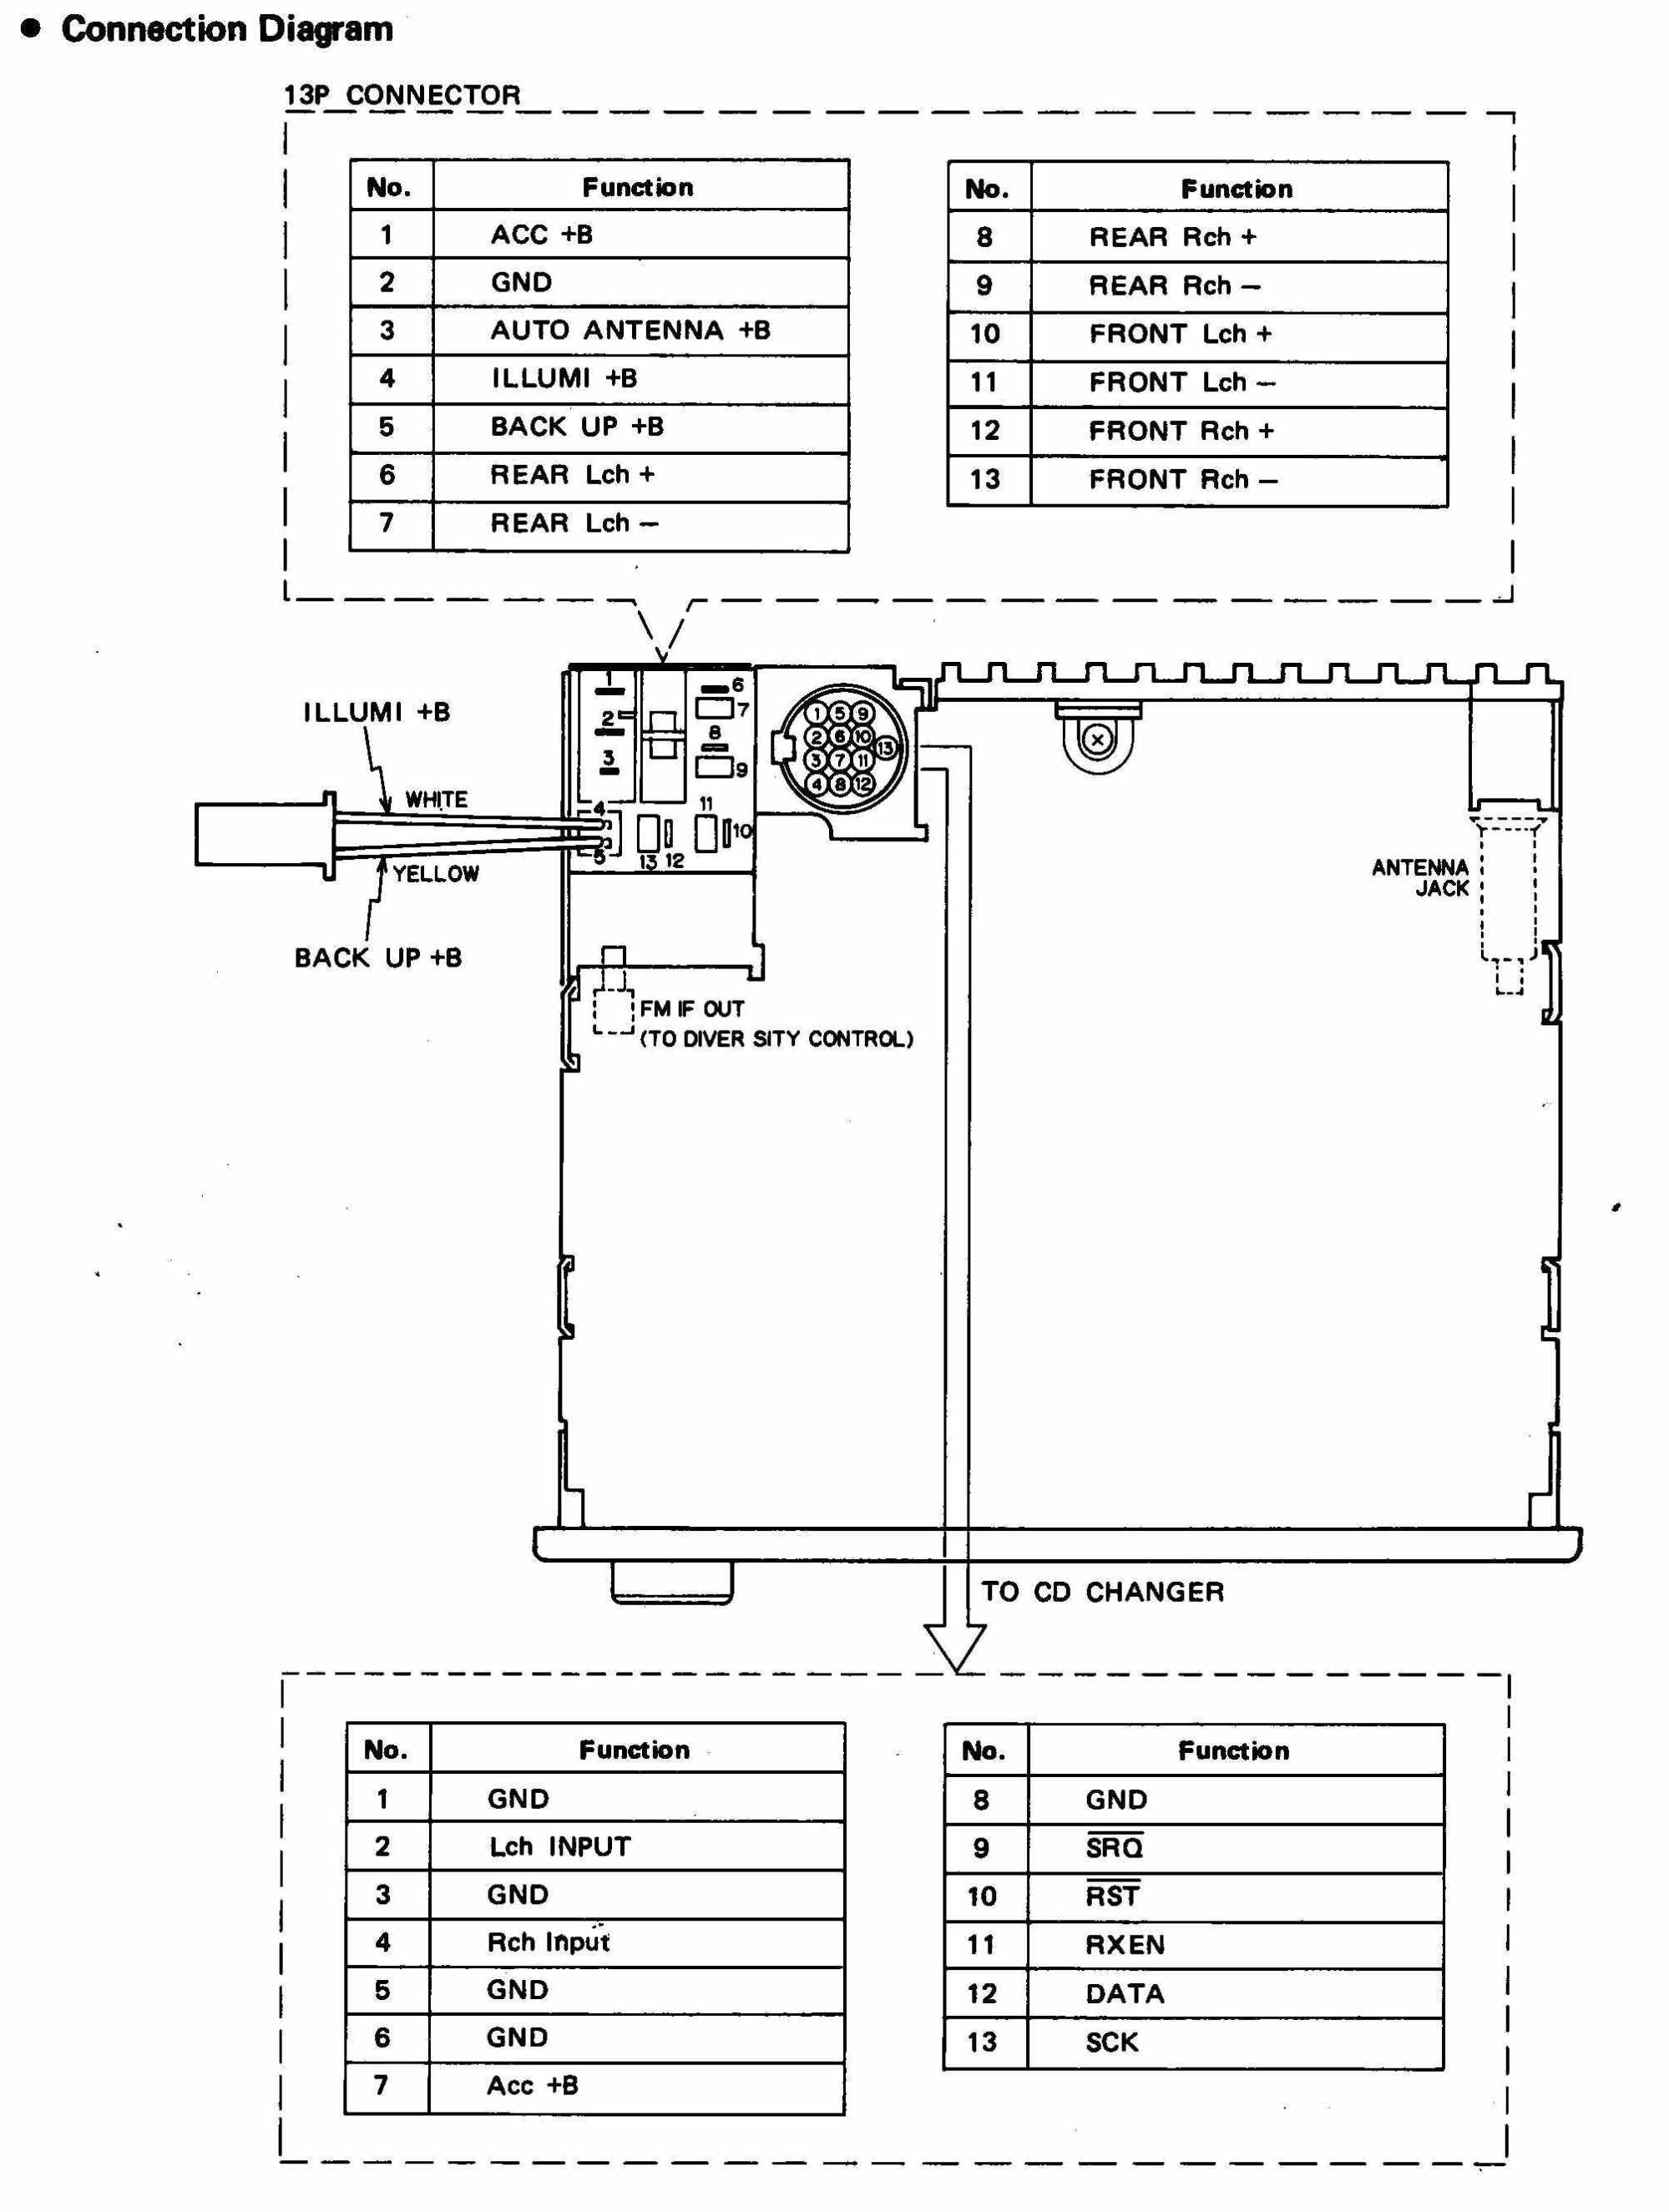 hight resolution of  wireharnessbmw121701 1996 jeep grand cherokee car stereo radio wiring diagram wiring 2002 jeep grand cherokee door